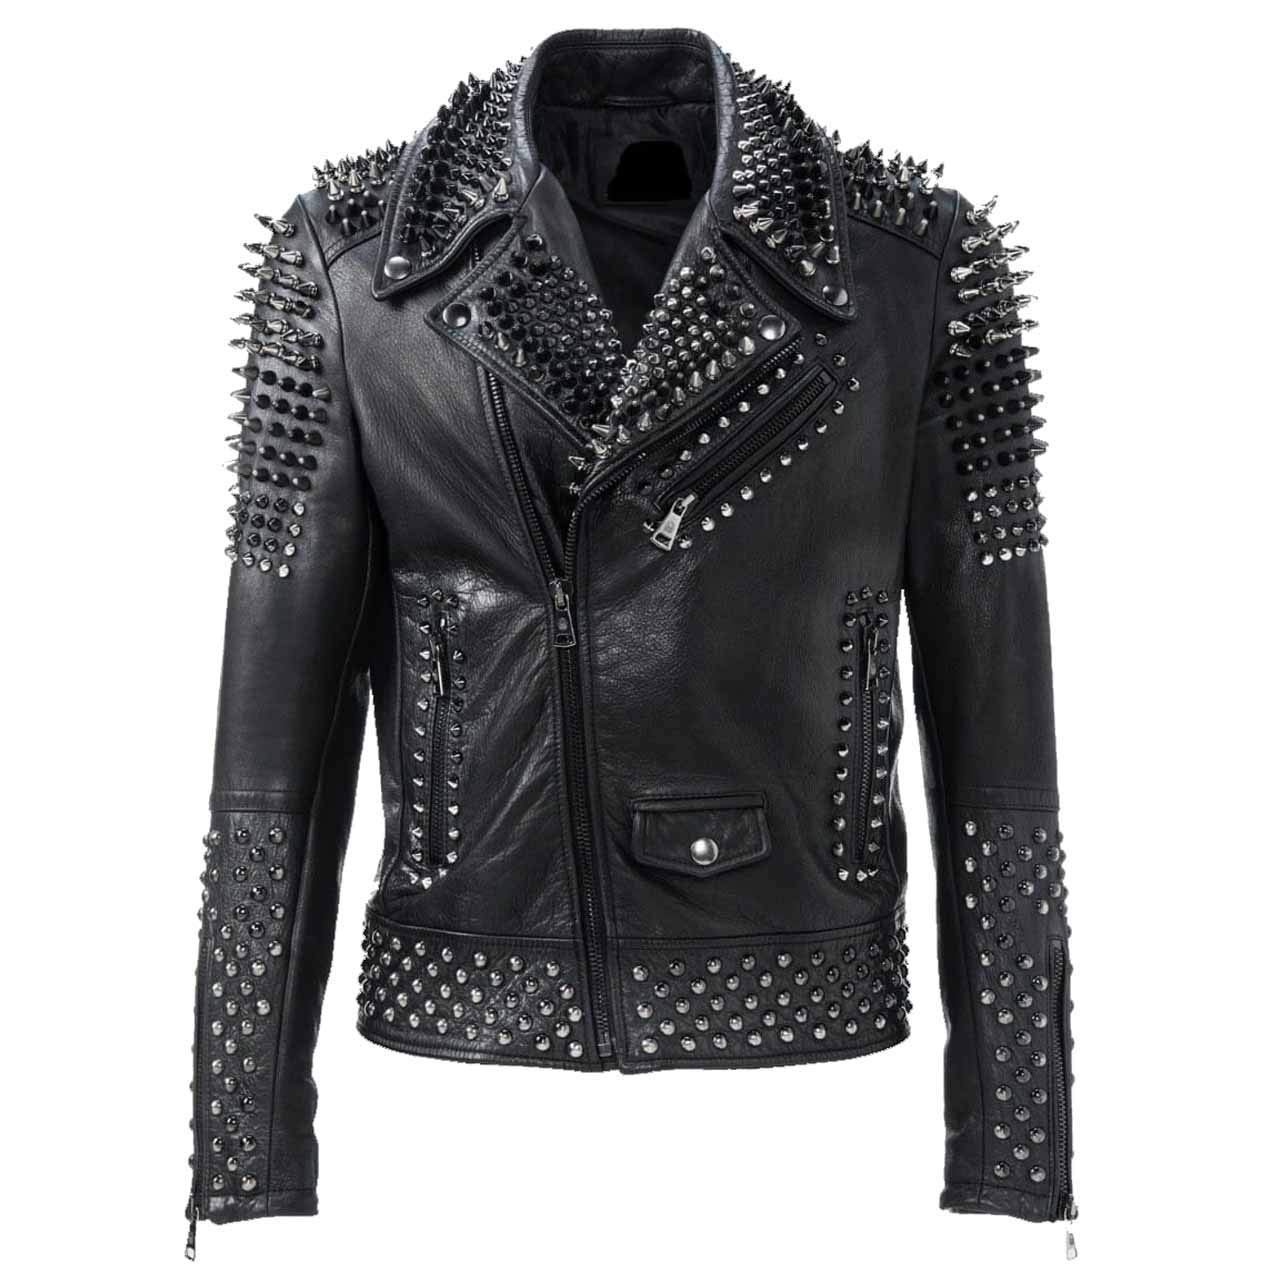 Men motorbike fashion style full body gothic silver studded black leather jacket SIze xs